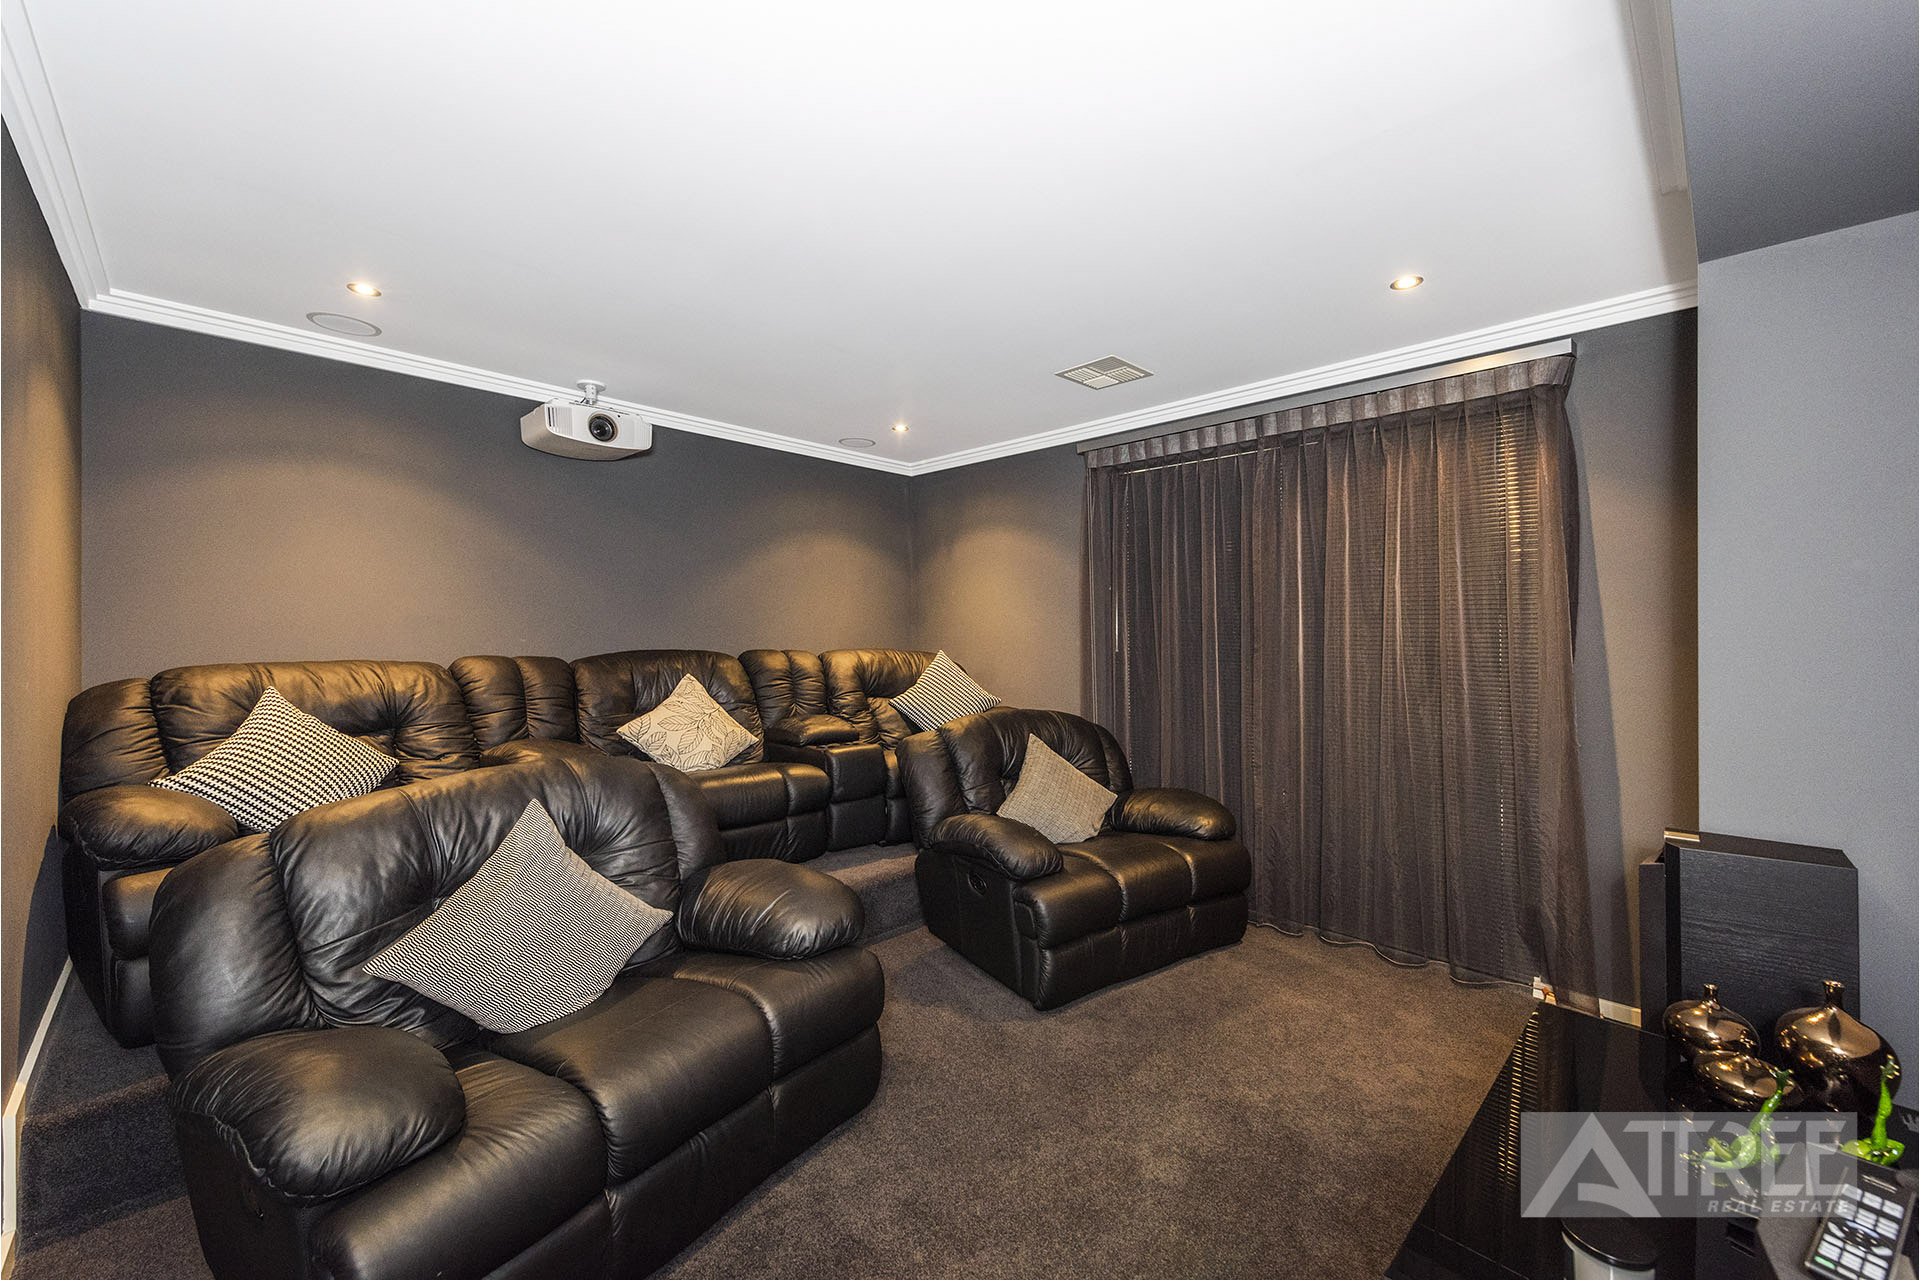 Property for sale in CANNING VALE, 1 Kinsale Parkway : Attree Real Estate